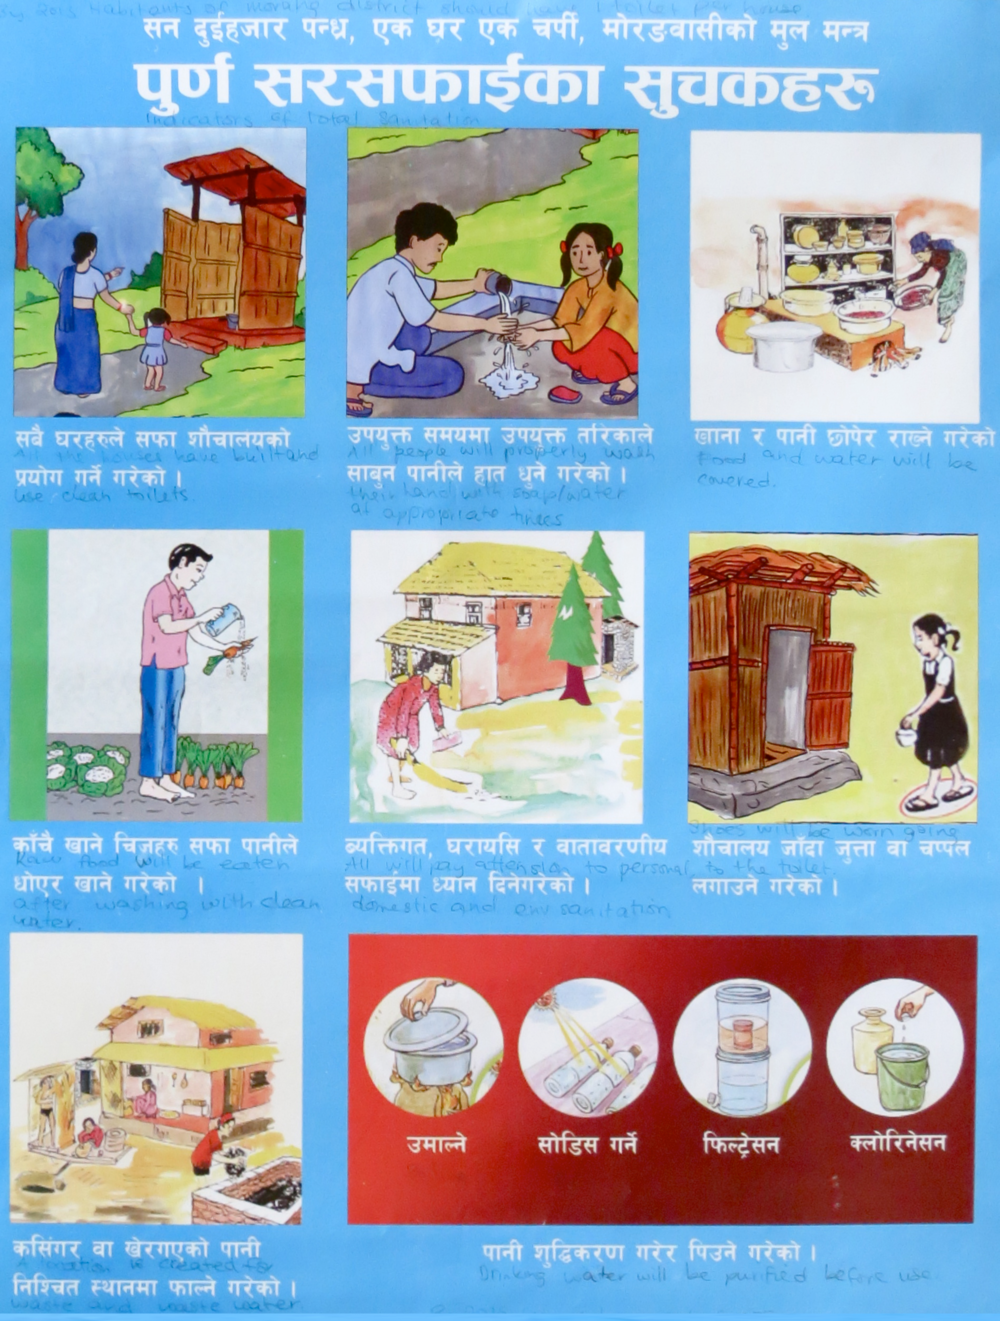 Indicators of Total Sanitation    By 2015, all people living in Morang District will have built a latrine at their home.   Indicators of Total Sanitation      Row 1 Image 1: ALl the houses have built and used clean latrines.   Image 2: All people will properly wash their hands with soap at appropriate times.   Image 3: FOod and water will be covered.      Row 2 Image 1: Raw food will be eaten after waning with clean water.   Image 2: Everyone will pay attention to domestic and environmental sanitation.   Image 3: Shoes will be worn going to the latrine.      Row 3: Image 1: A location will be created for waste and waste-water.